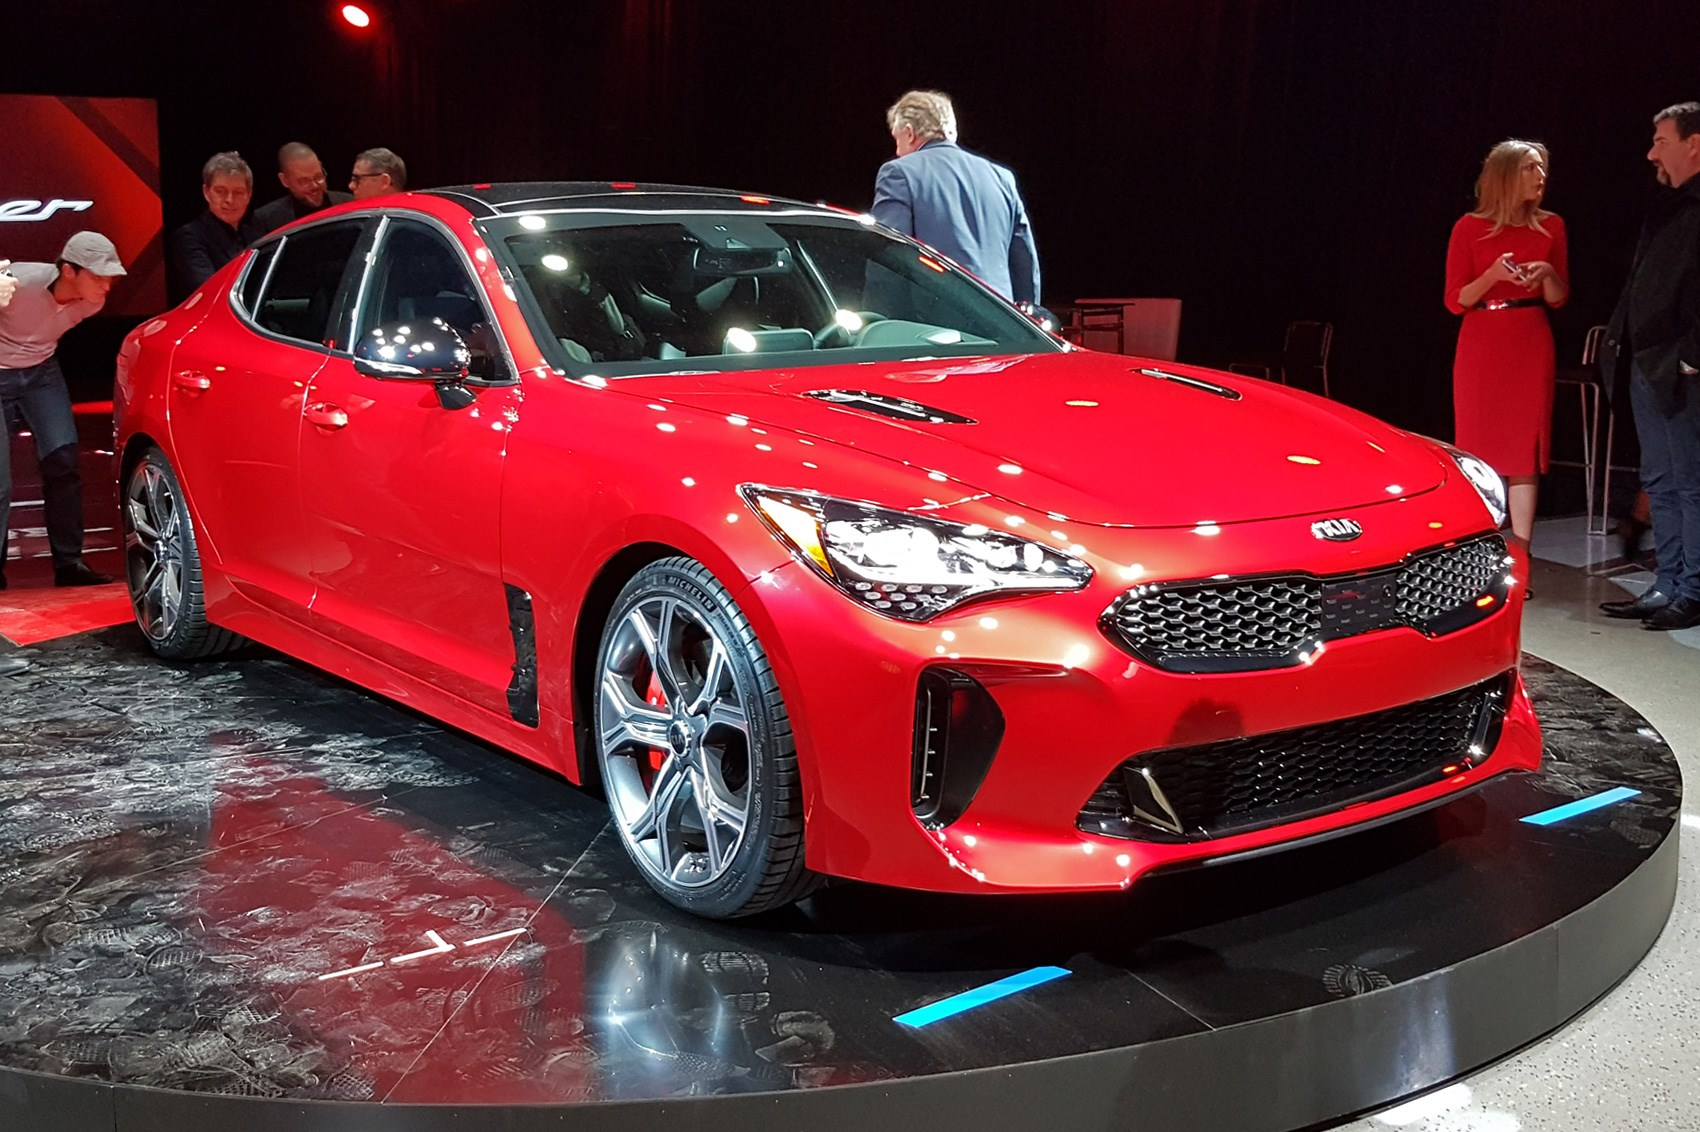 hd kia stinger sports picture images car gt wsupercars wallpapers